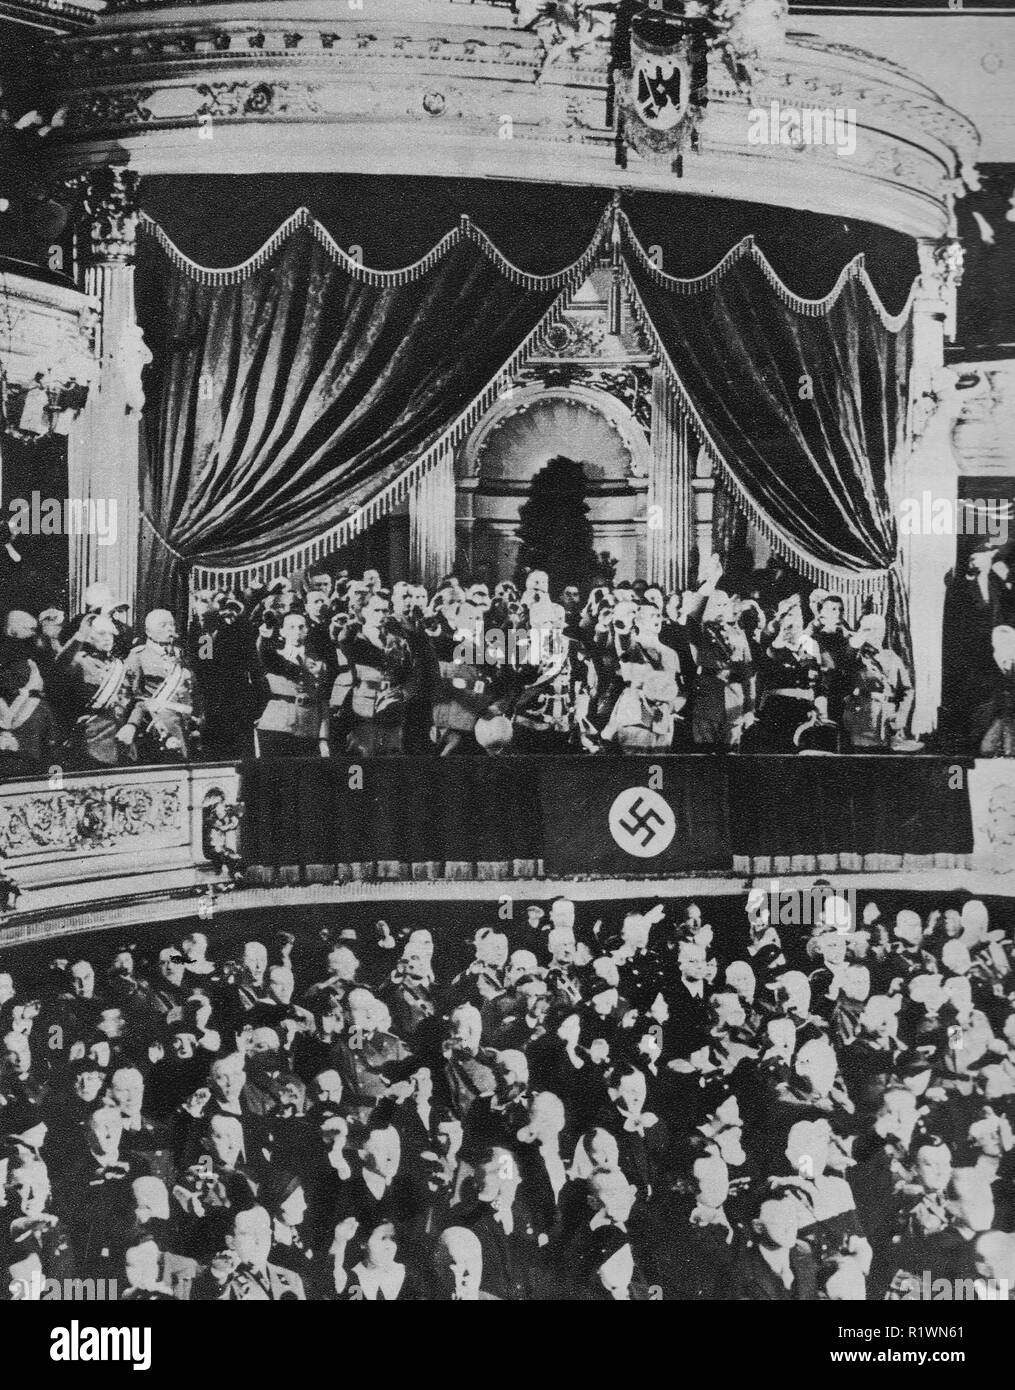 Hitler at Kroll Opera House, Berlin (seat of the Reichstag) March 16th 1935 - Memorial Day for fallen soldiers in previous war - His Nazi cabinet and followers are with him on the balcony giving a Nazi salute - Stock Image